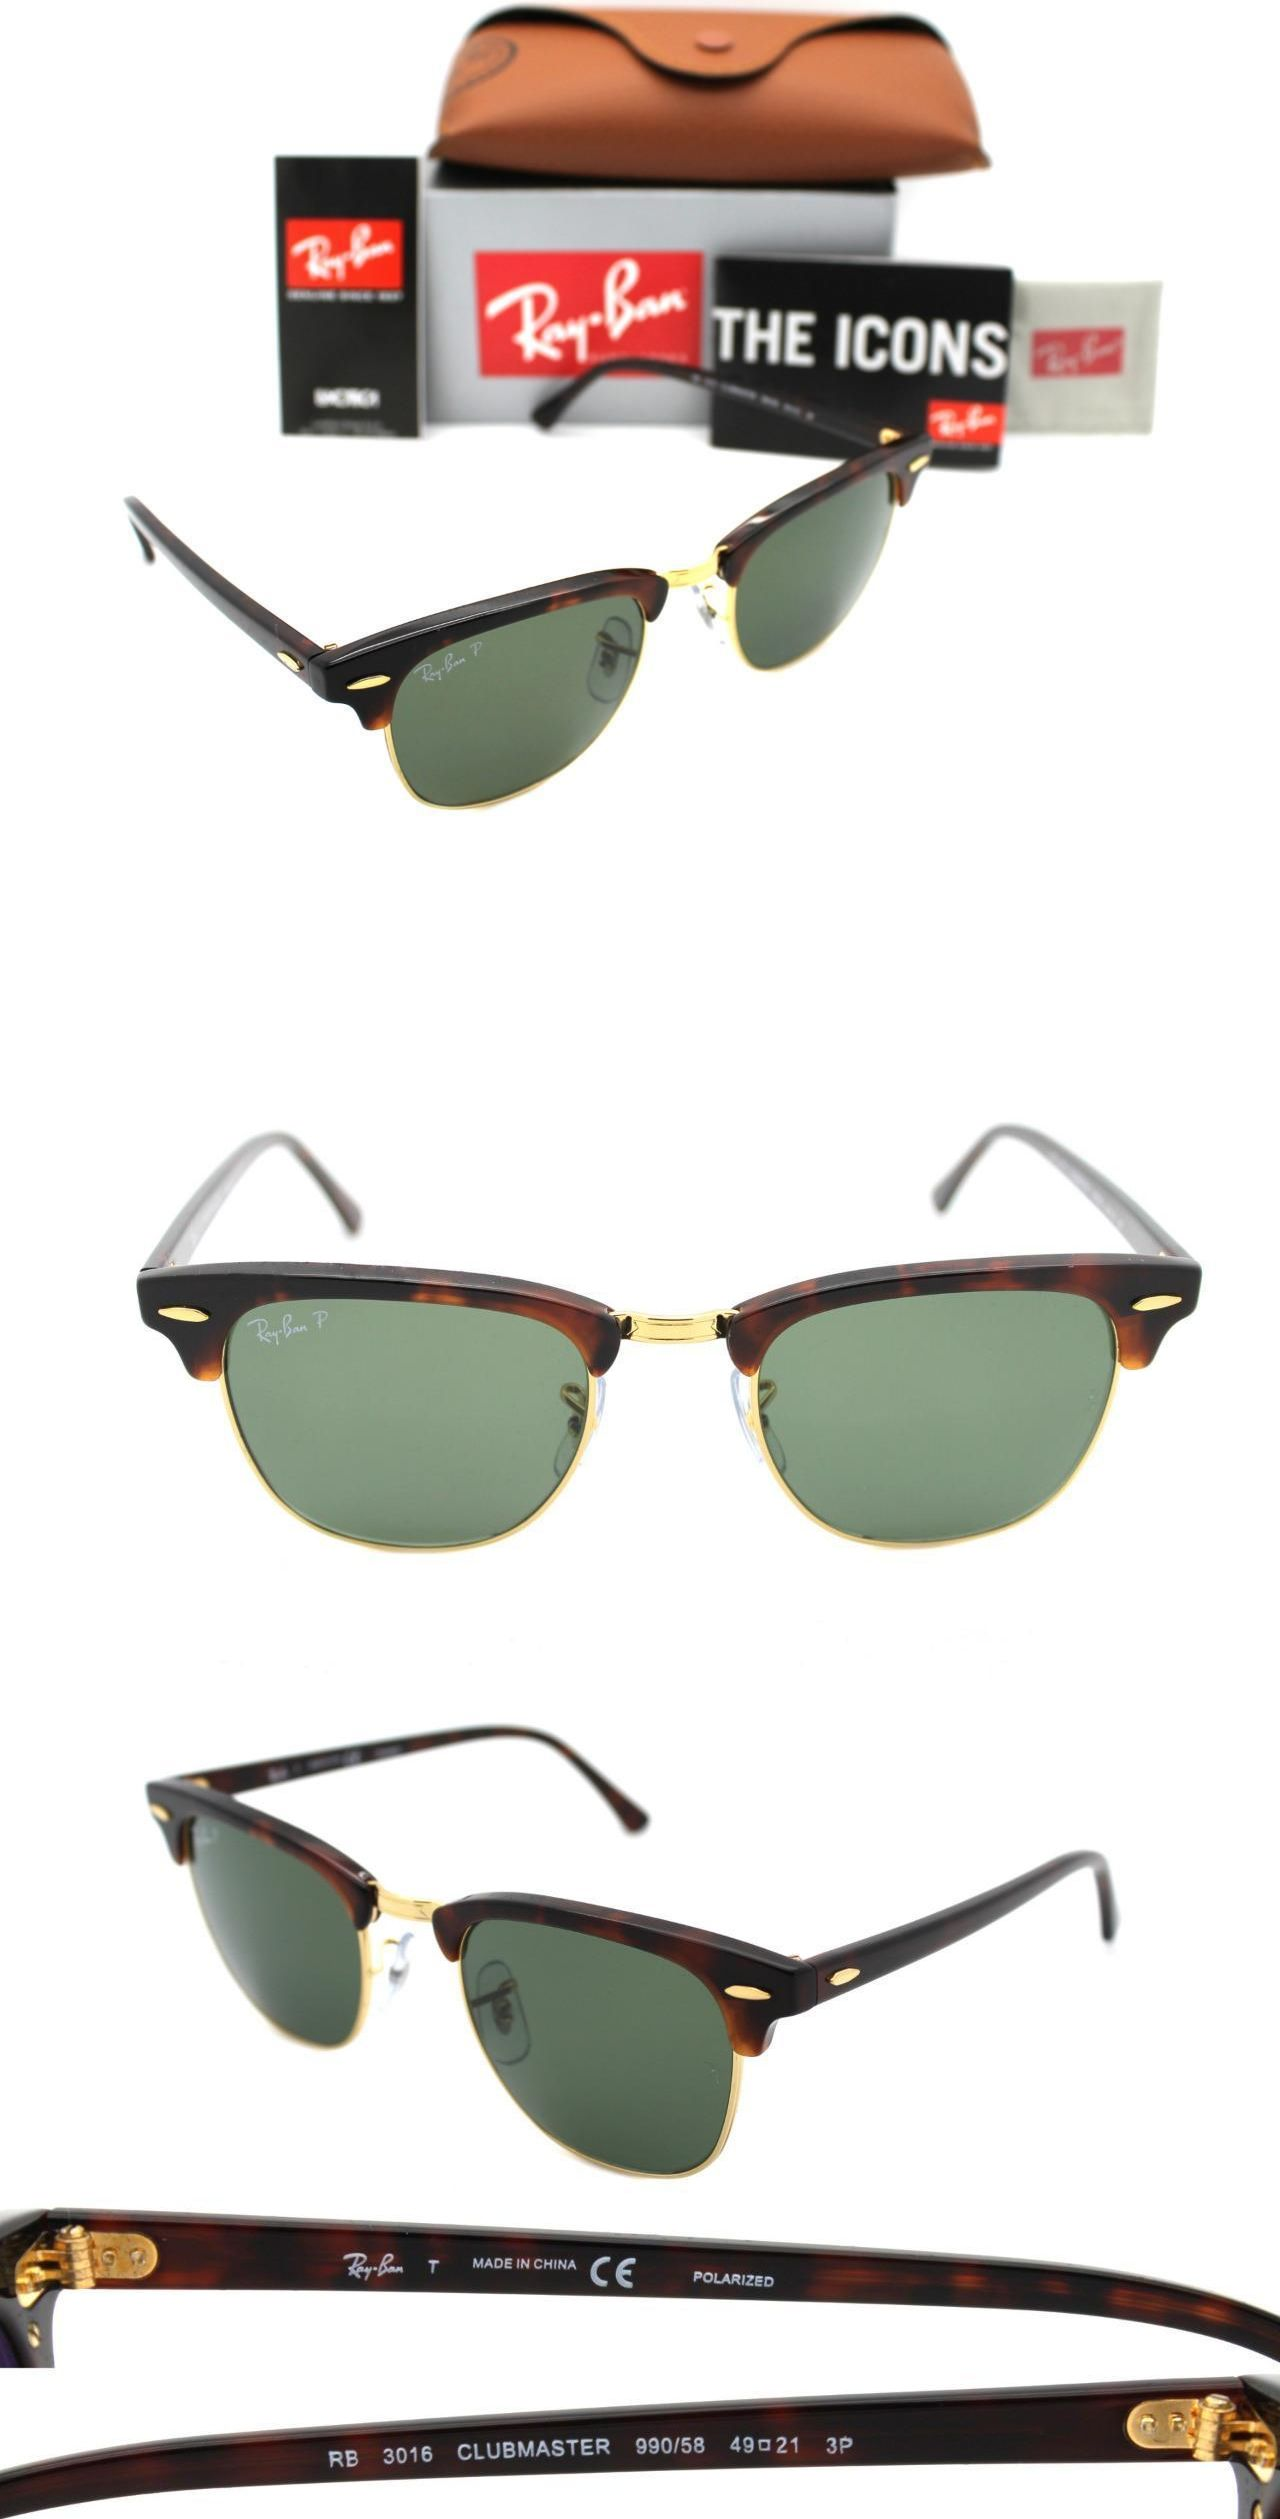 68760245484 ... where to buy sunglasses 155189 ray ban authentic clubmaster 3016 990 58  havana frame green polarized